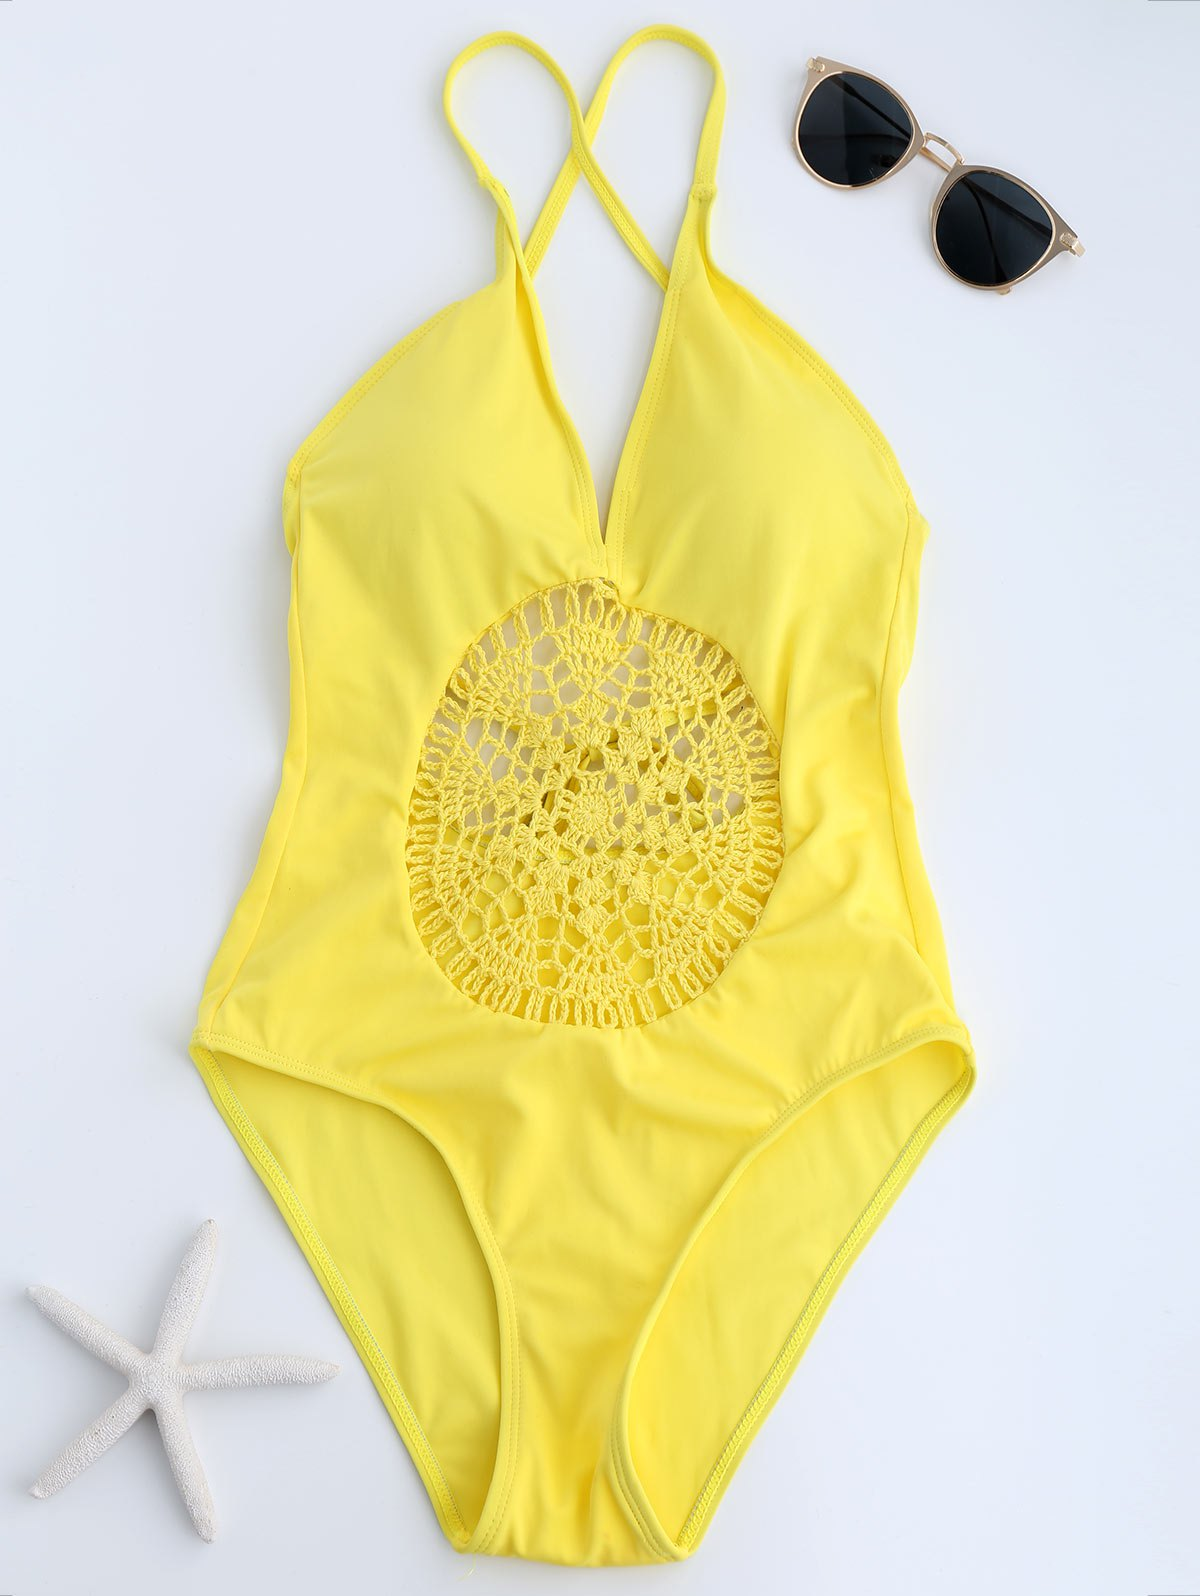 Crochet Insert Backless One Piece Swimsuit - YELLOW S